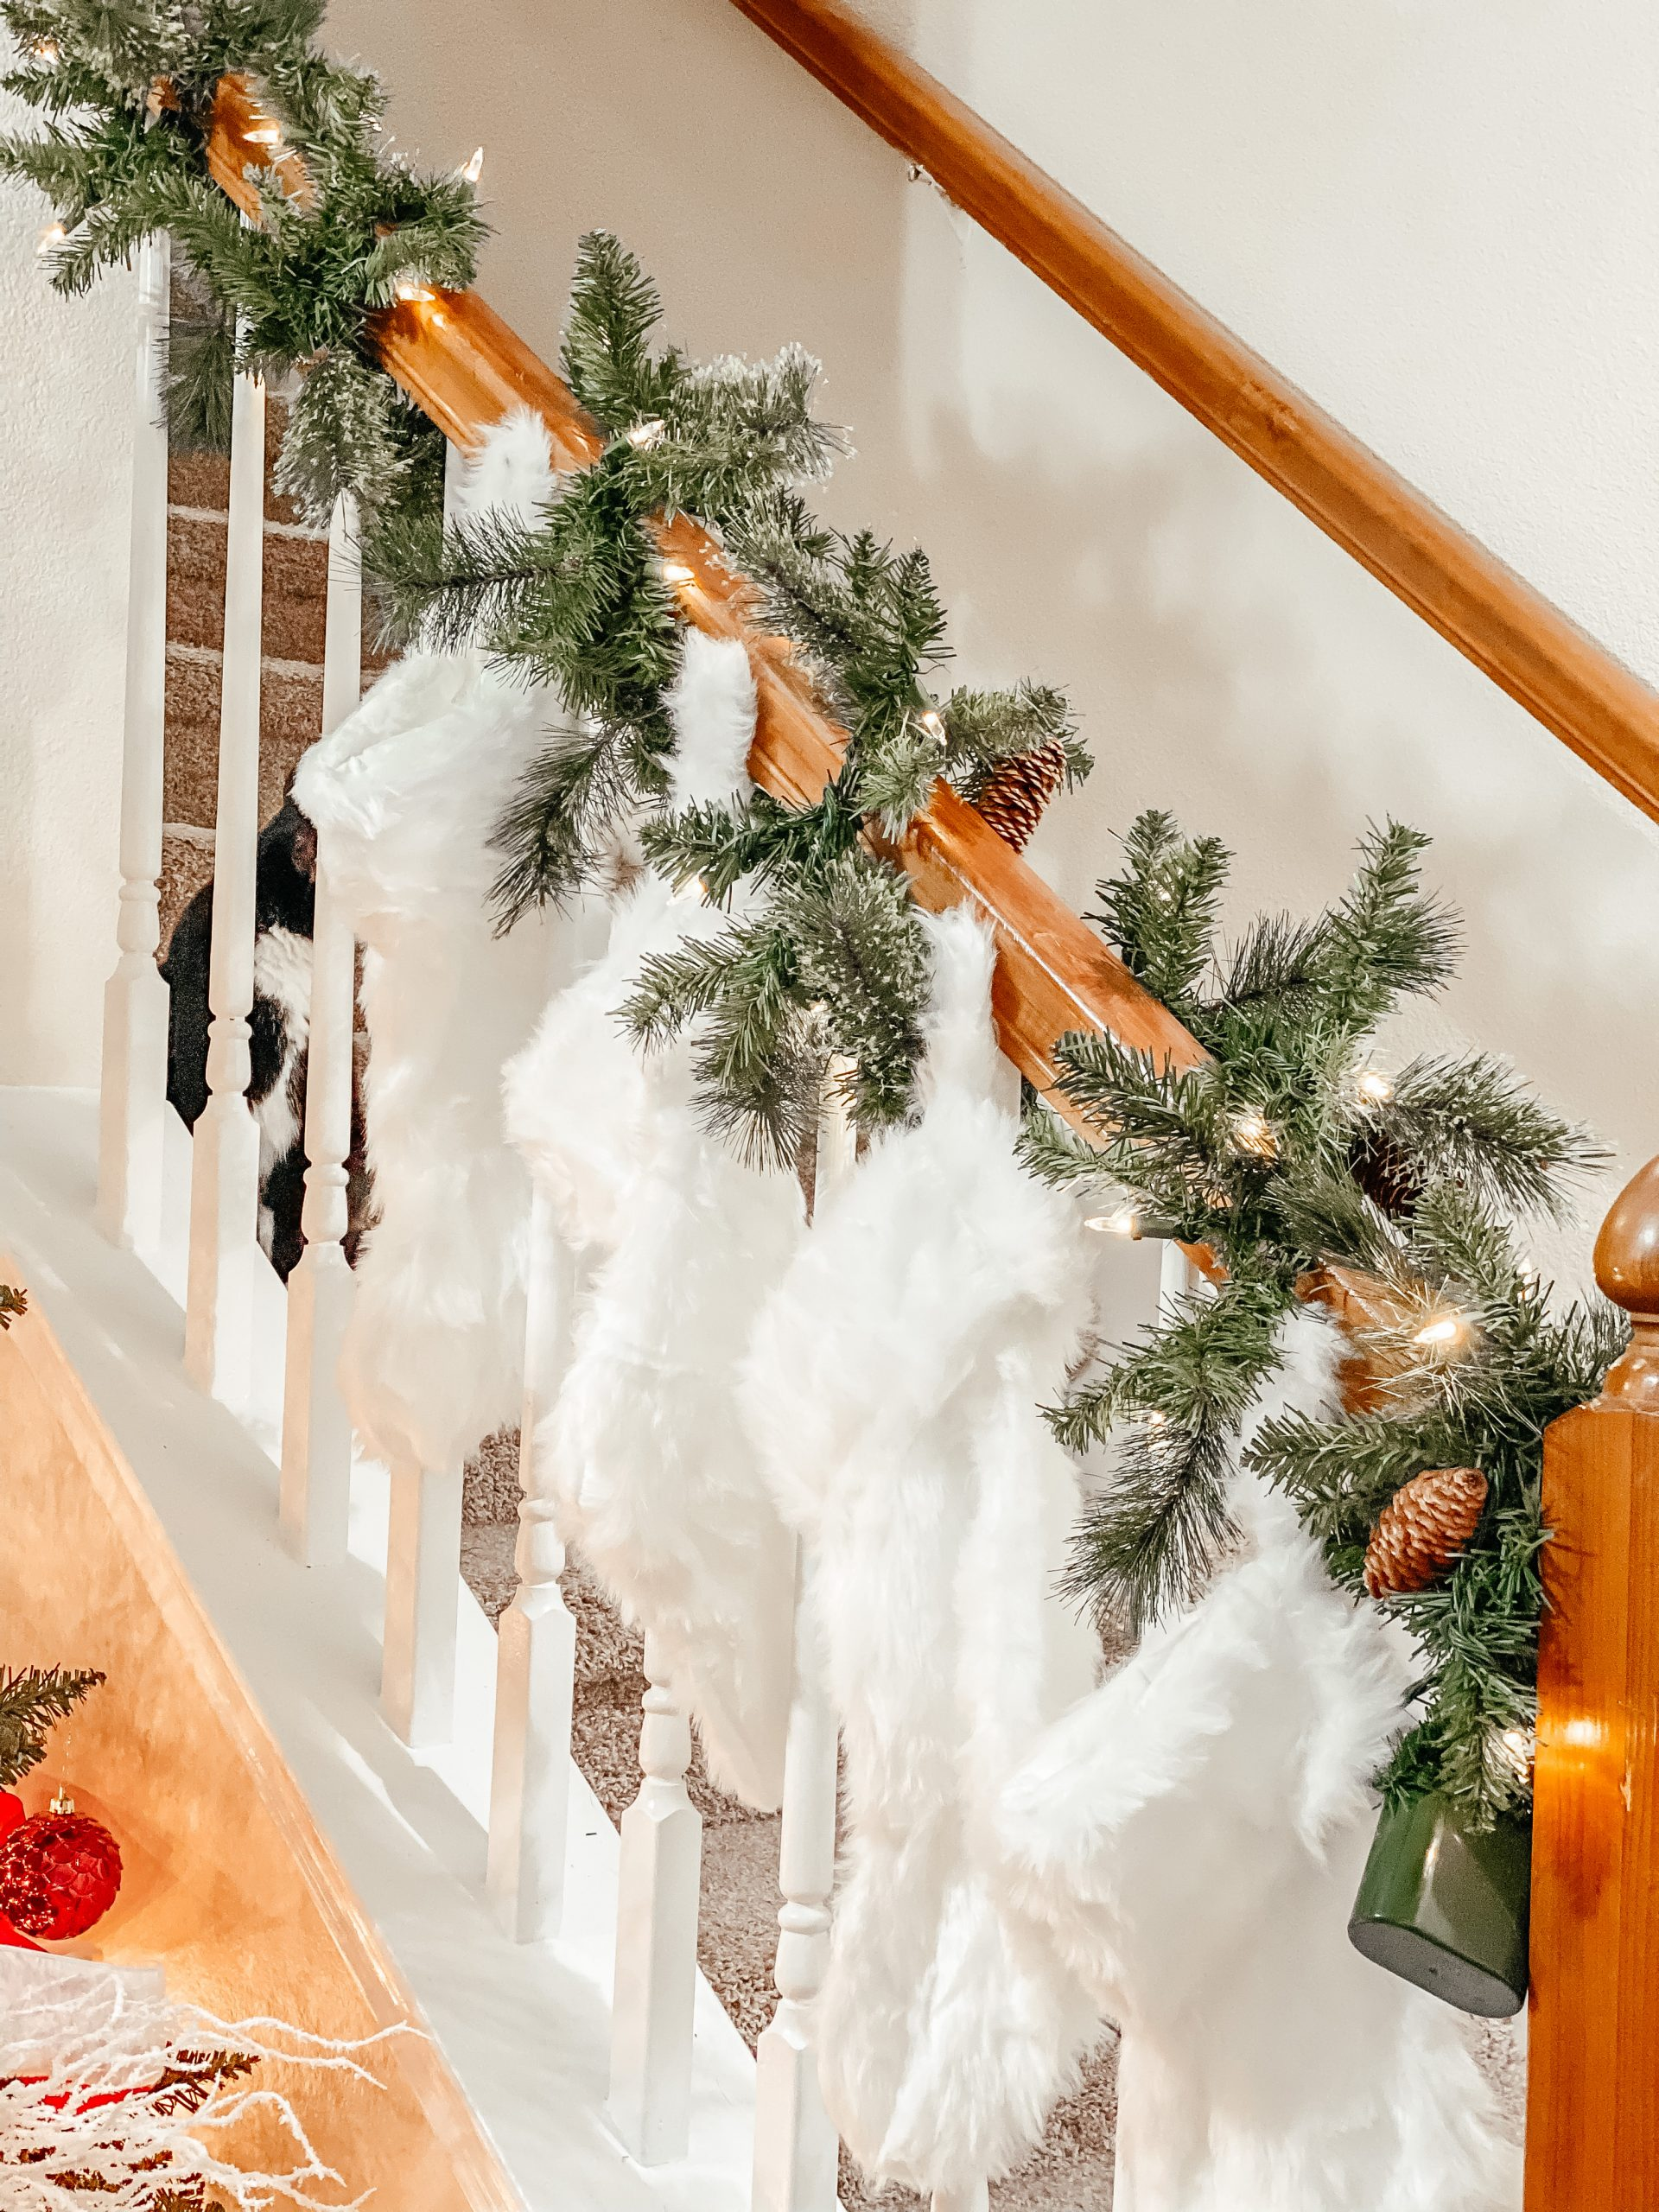 Christmas stockings and garland on banister